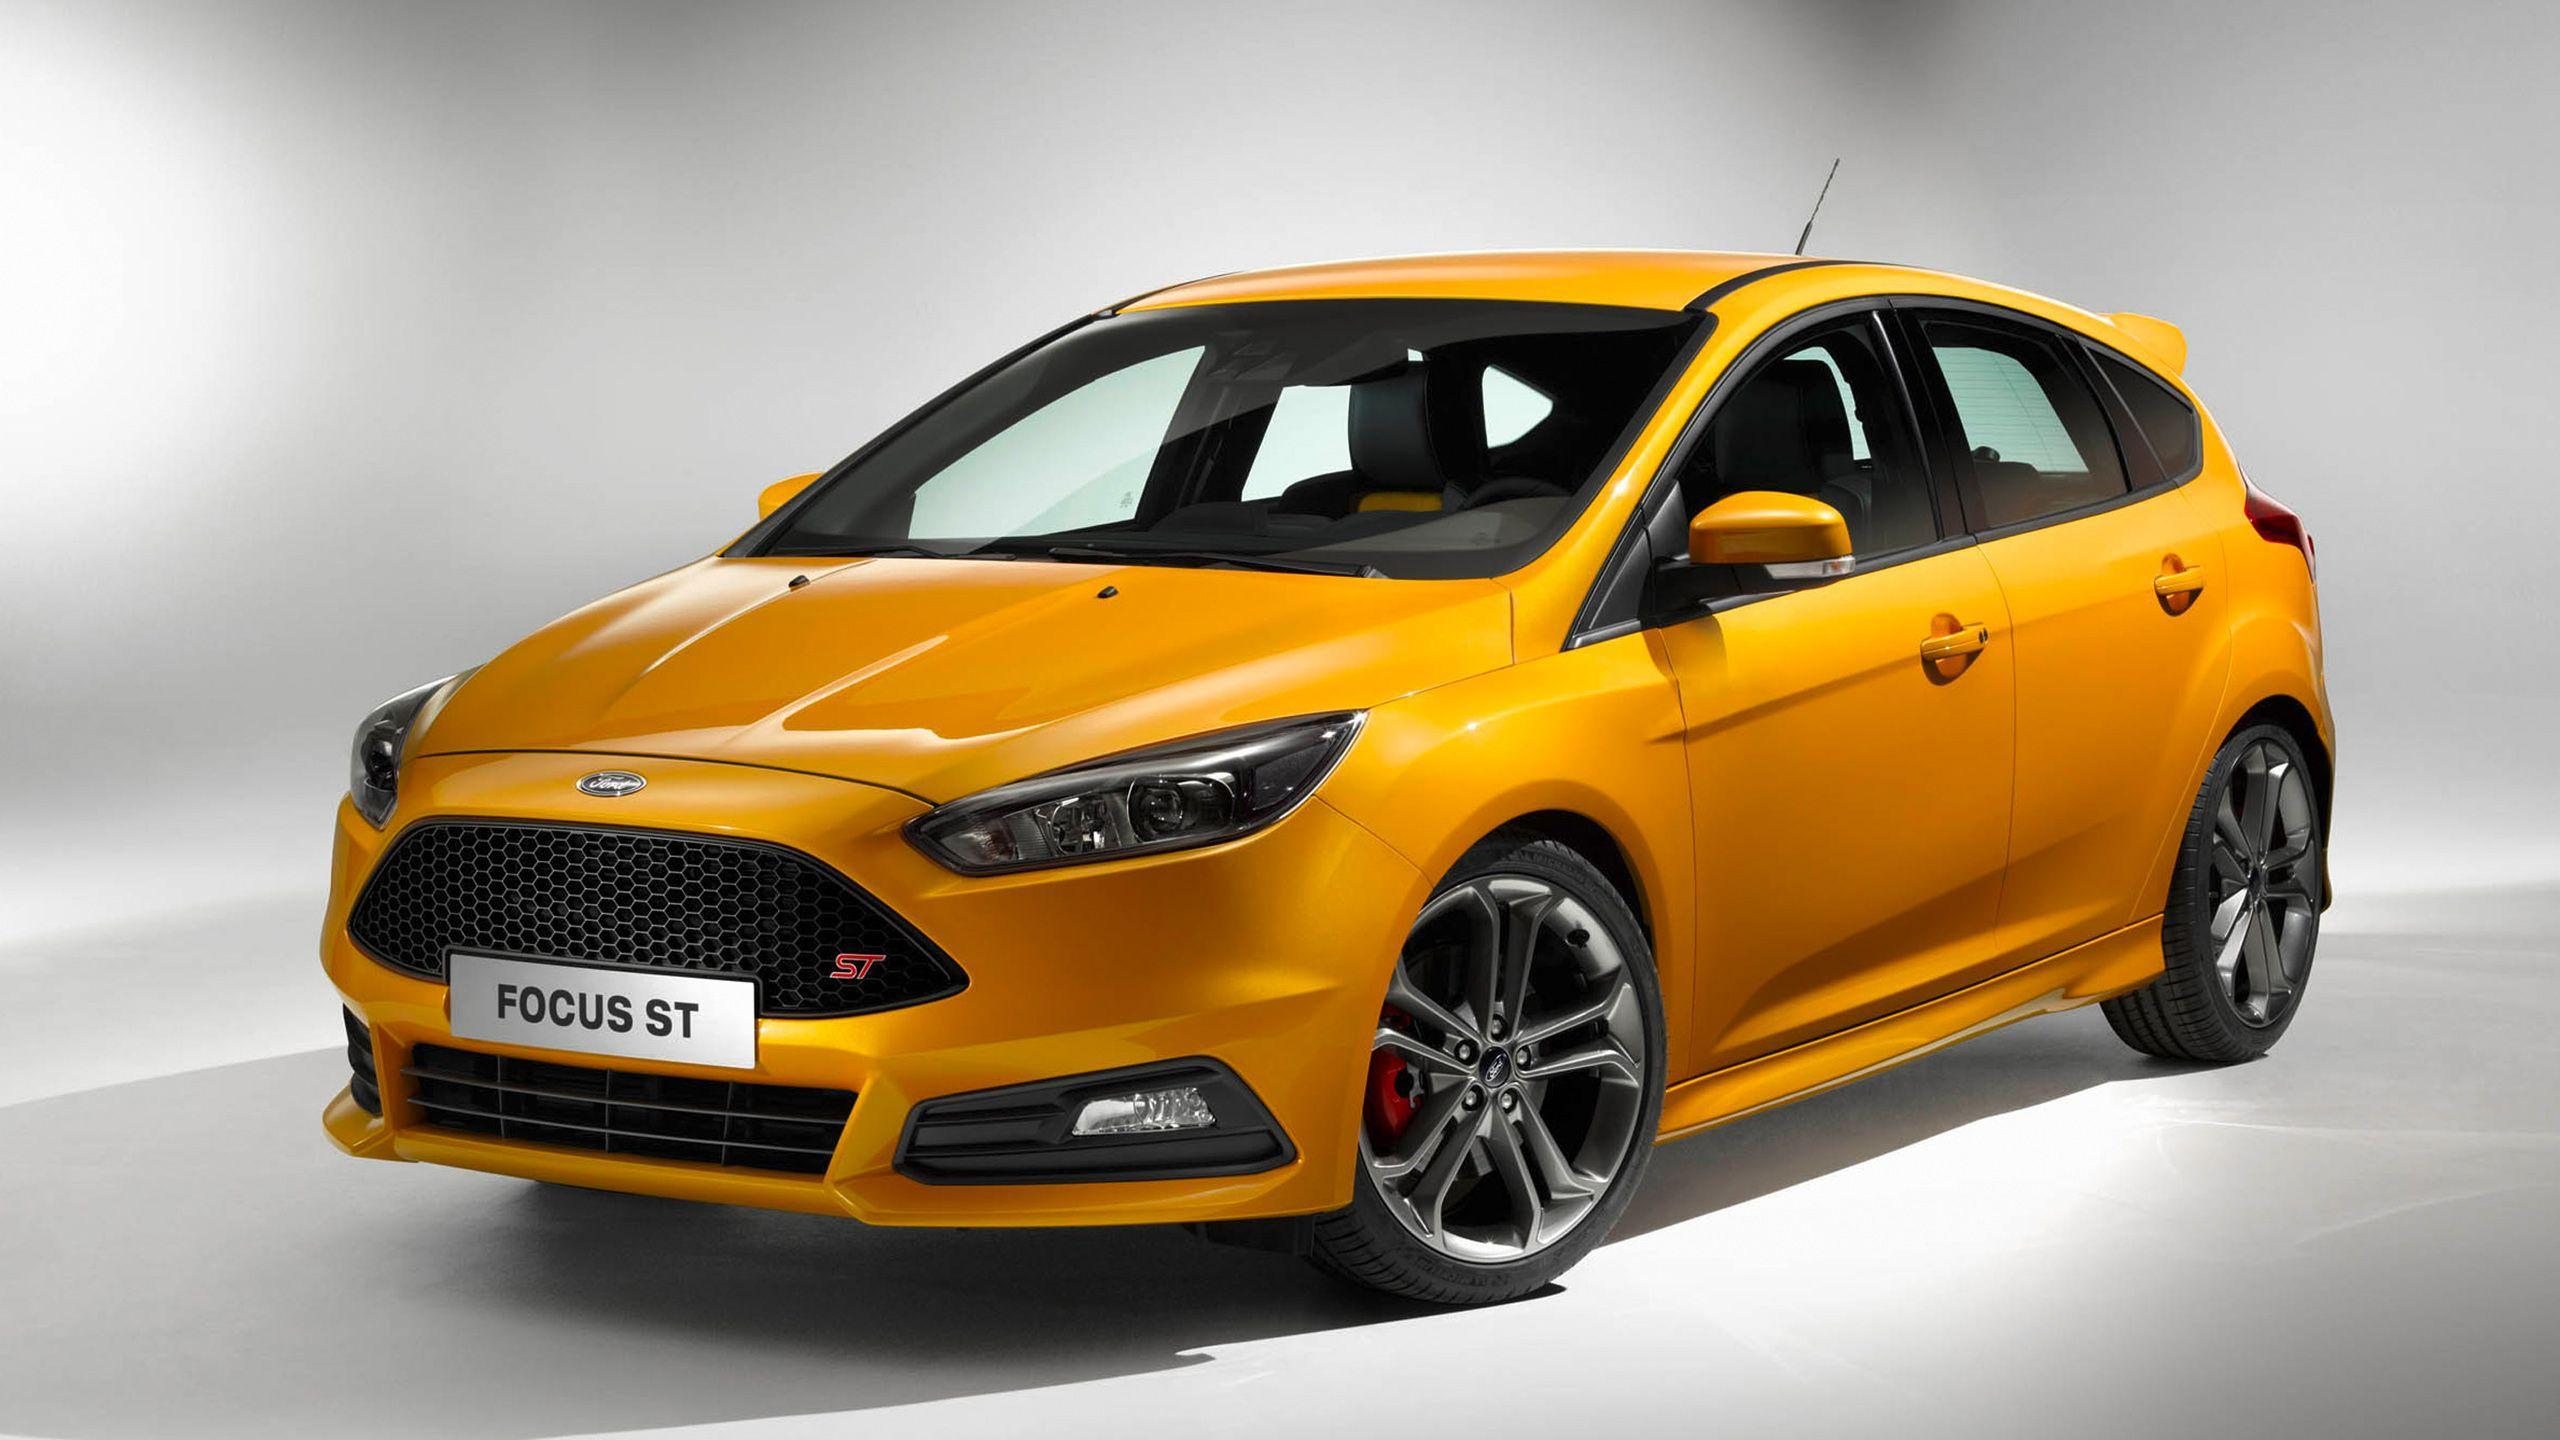 2015 Ford Focus ST Wallpapers